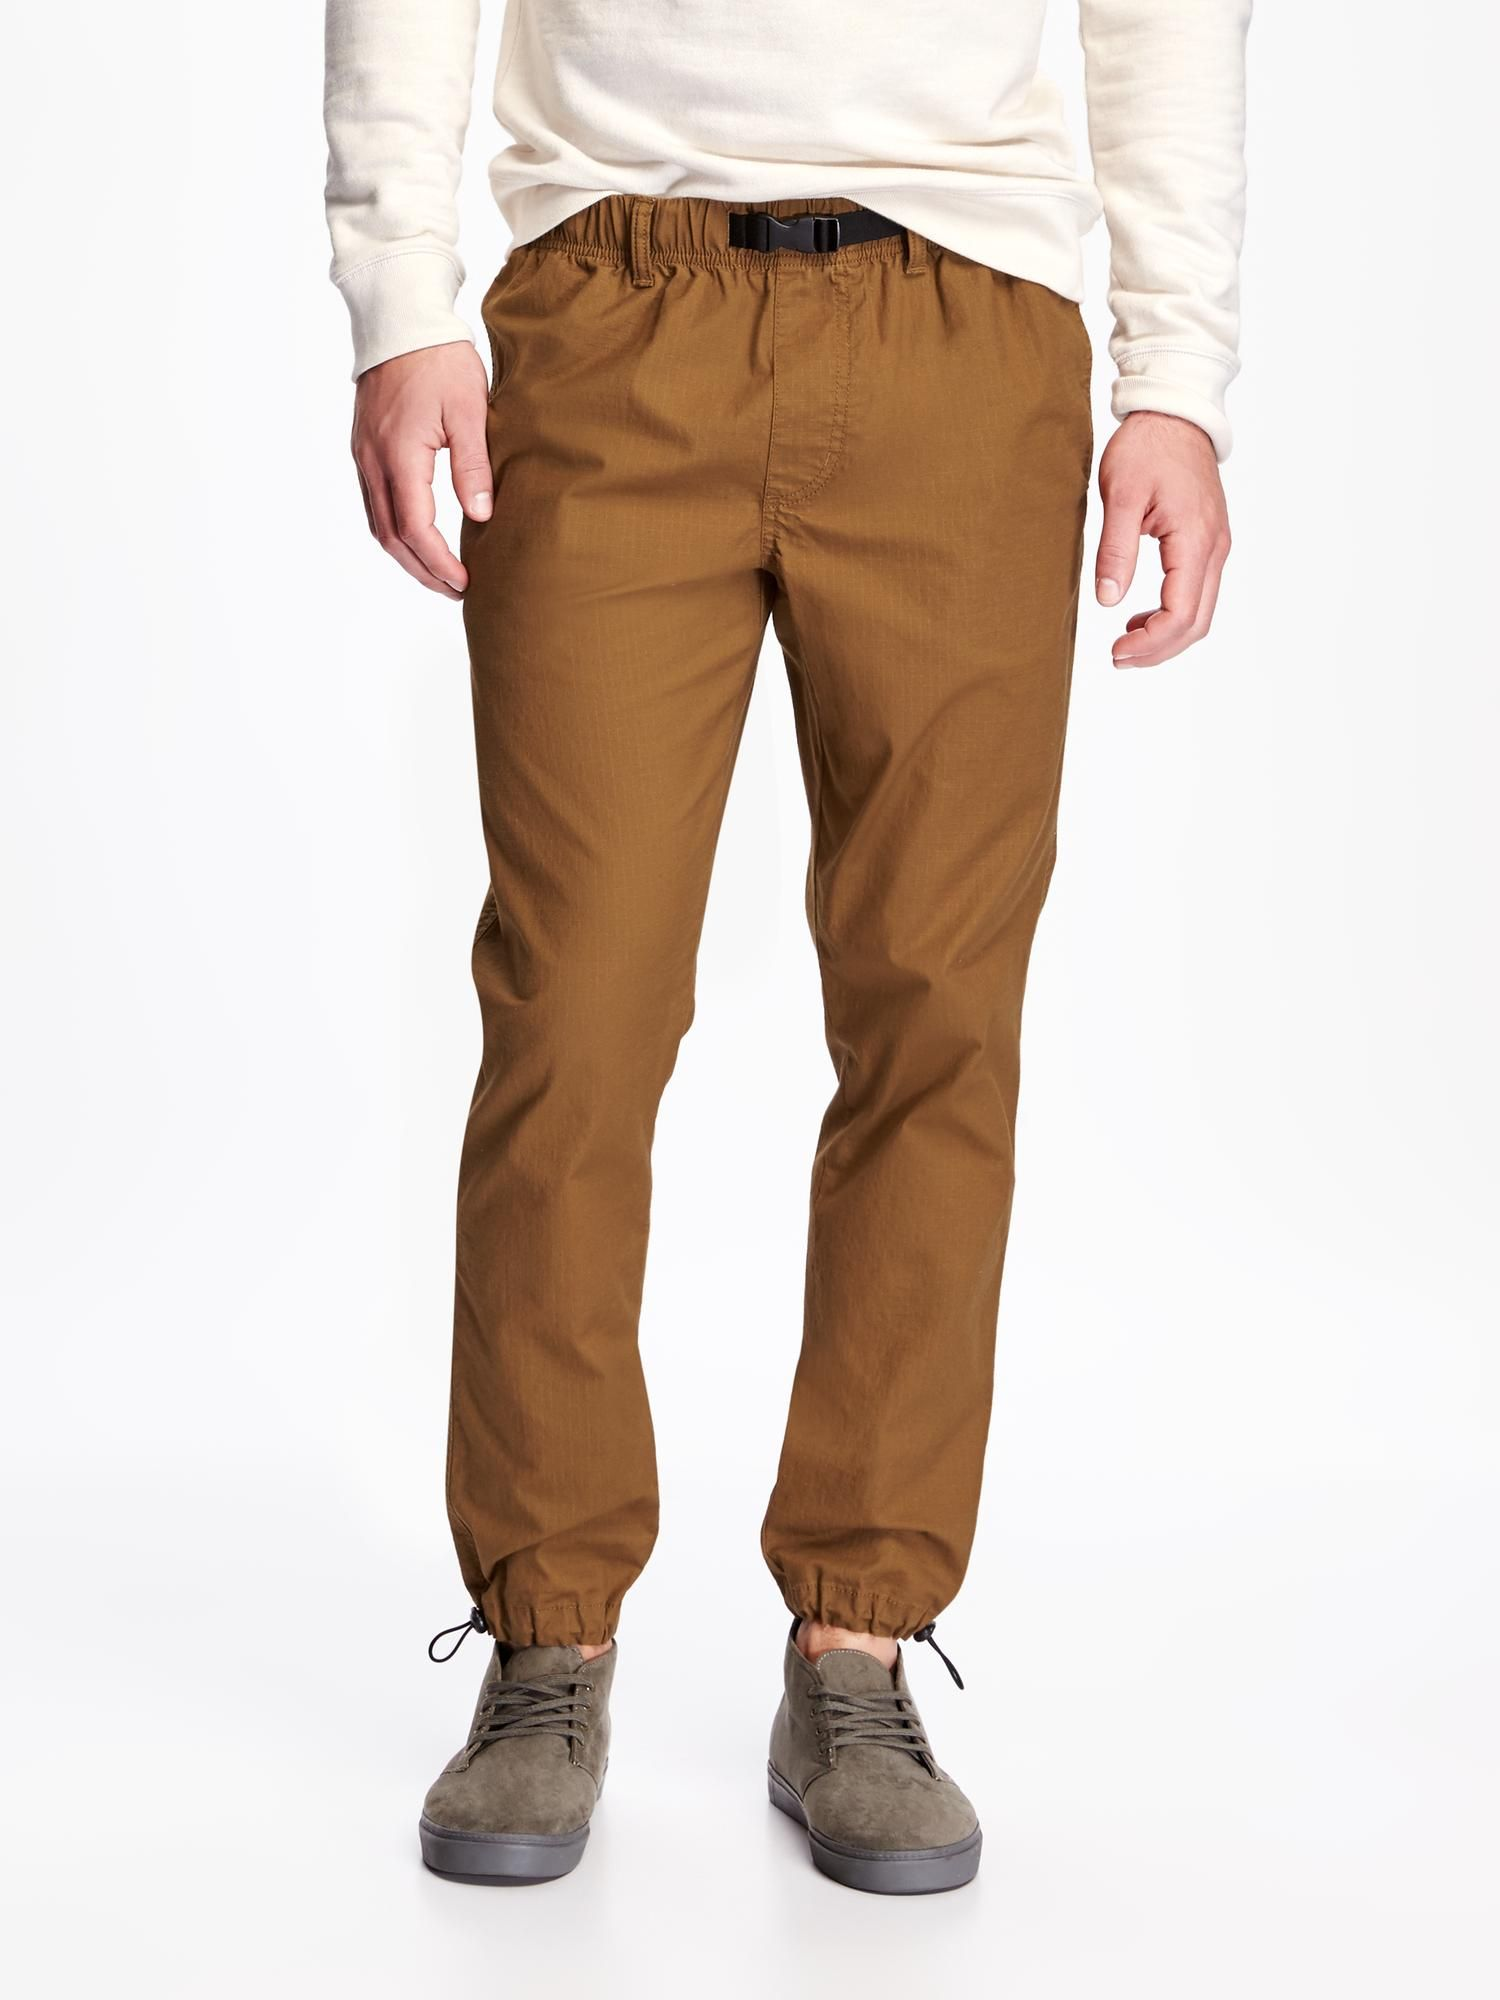 5ea2e20c831aee Ripstop Joggers for Men | Old Navy | Massimo Mens Pants FW 17/18 ...